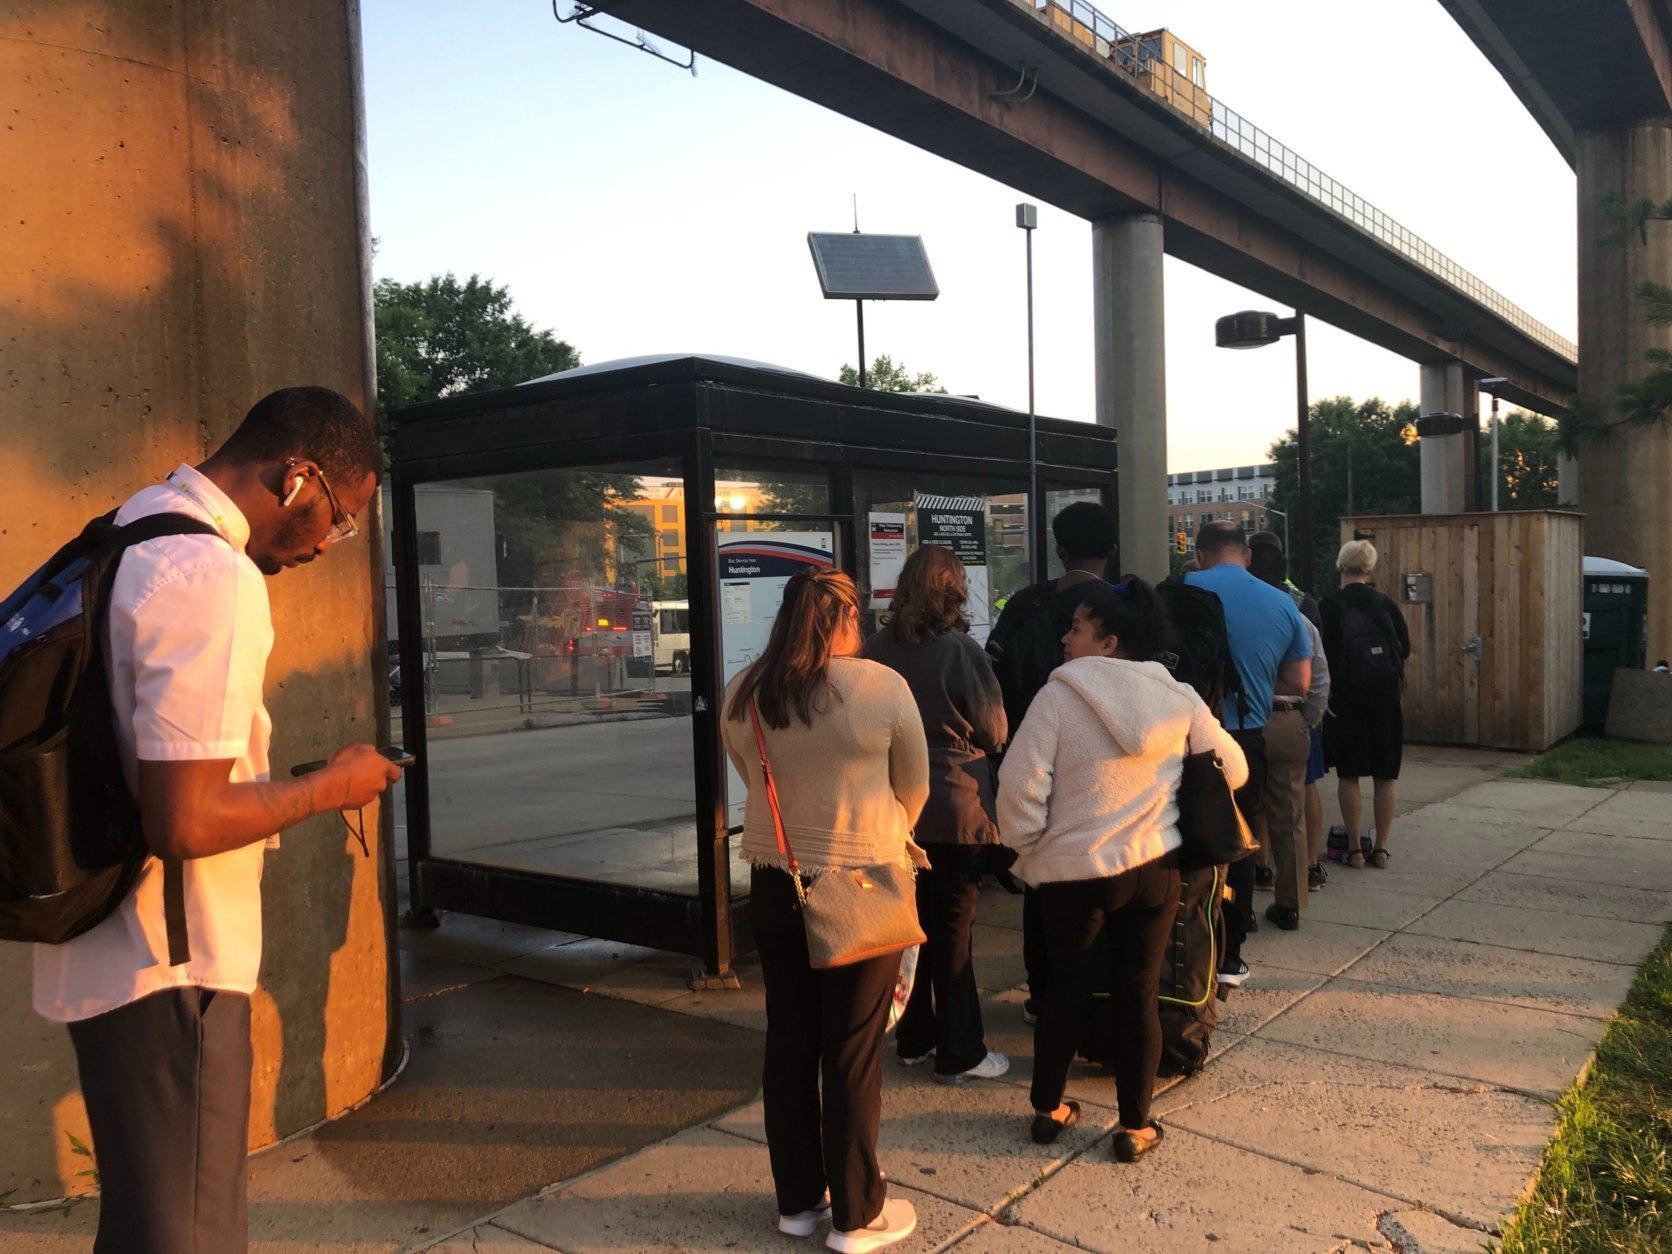 Metro riders wait for a shuttle to arrive June 3, 2019. (WTOP/Melissa Howell)